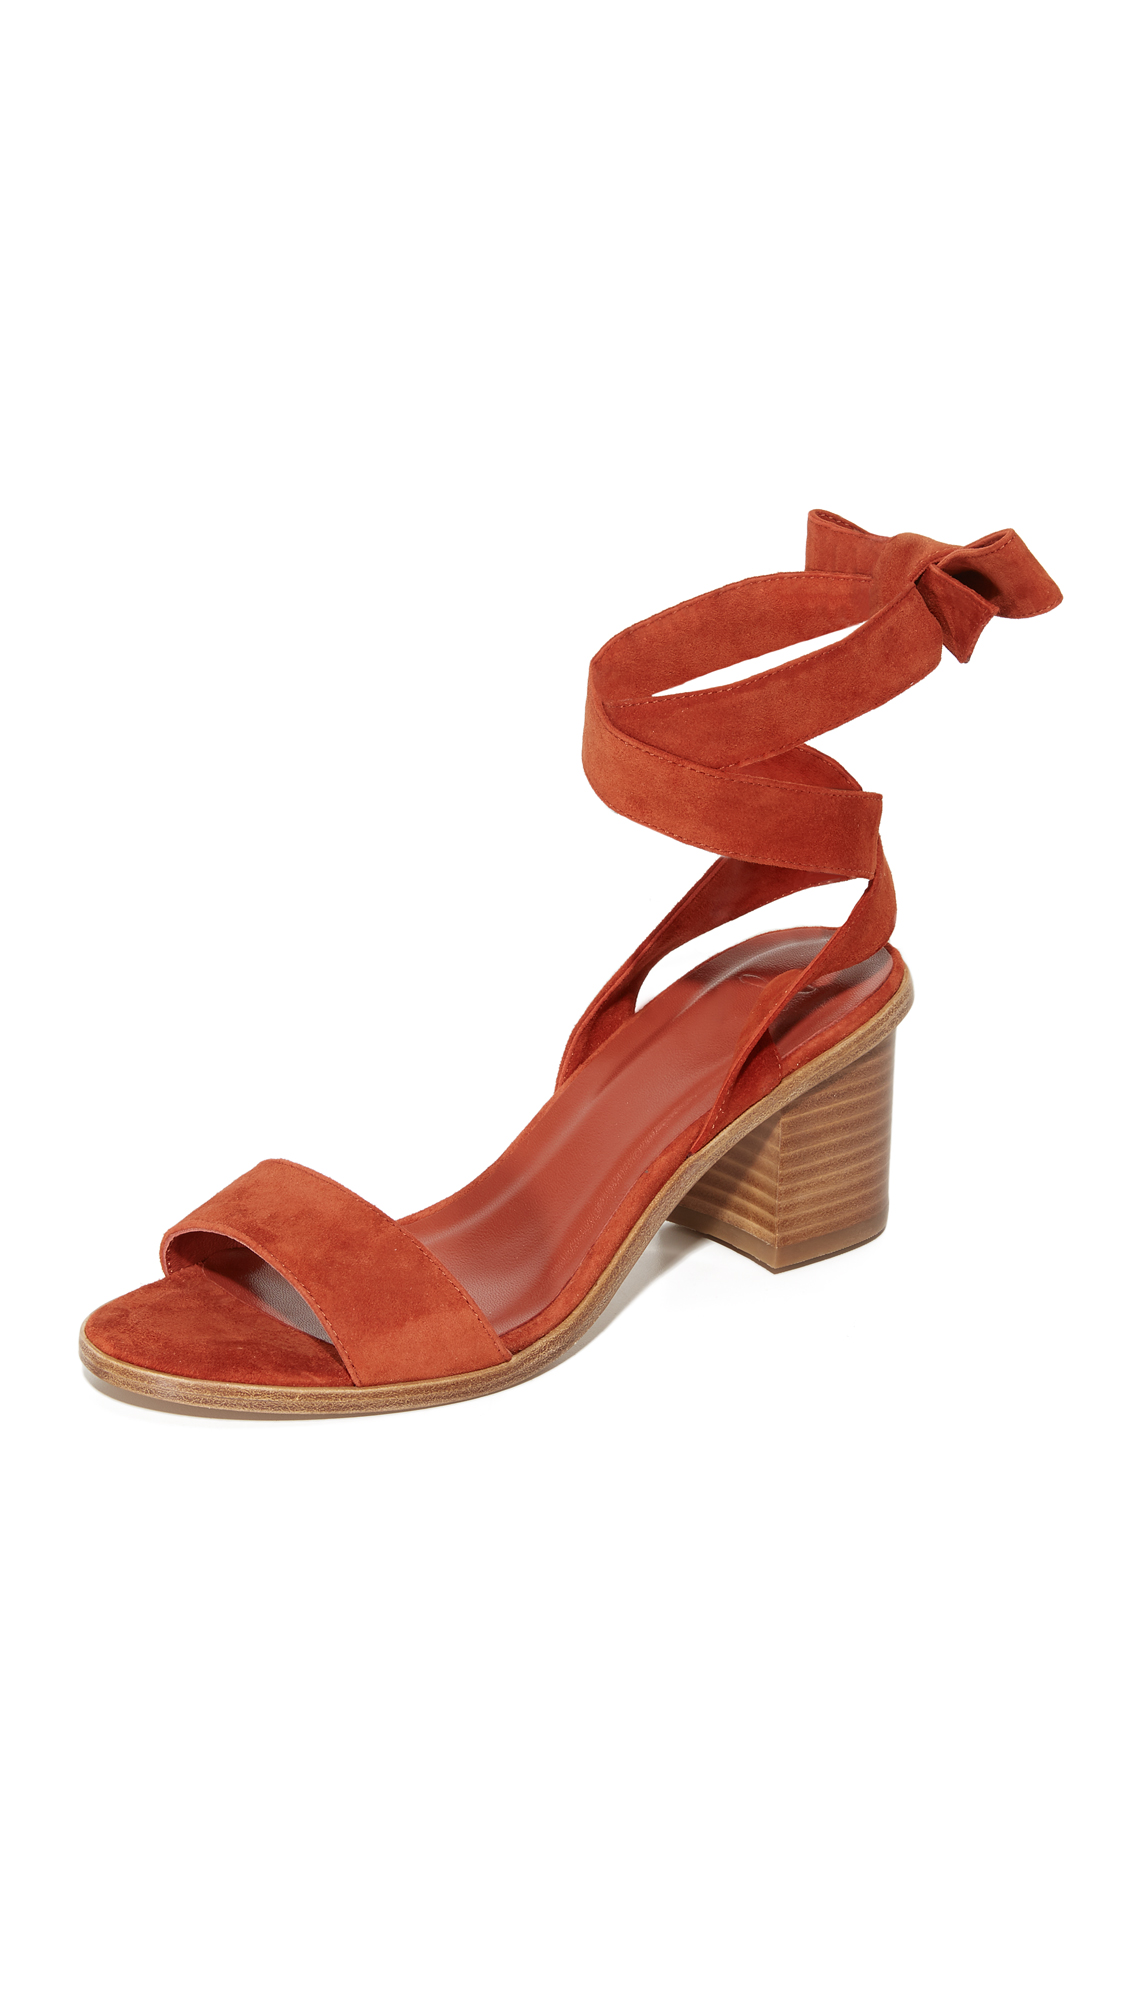 Joie Mamie City Sandals - Burn Ochre